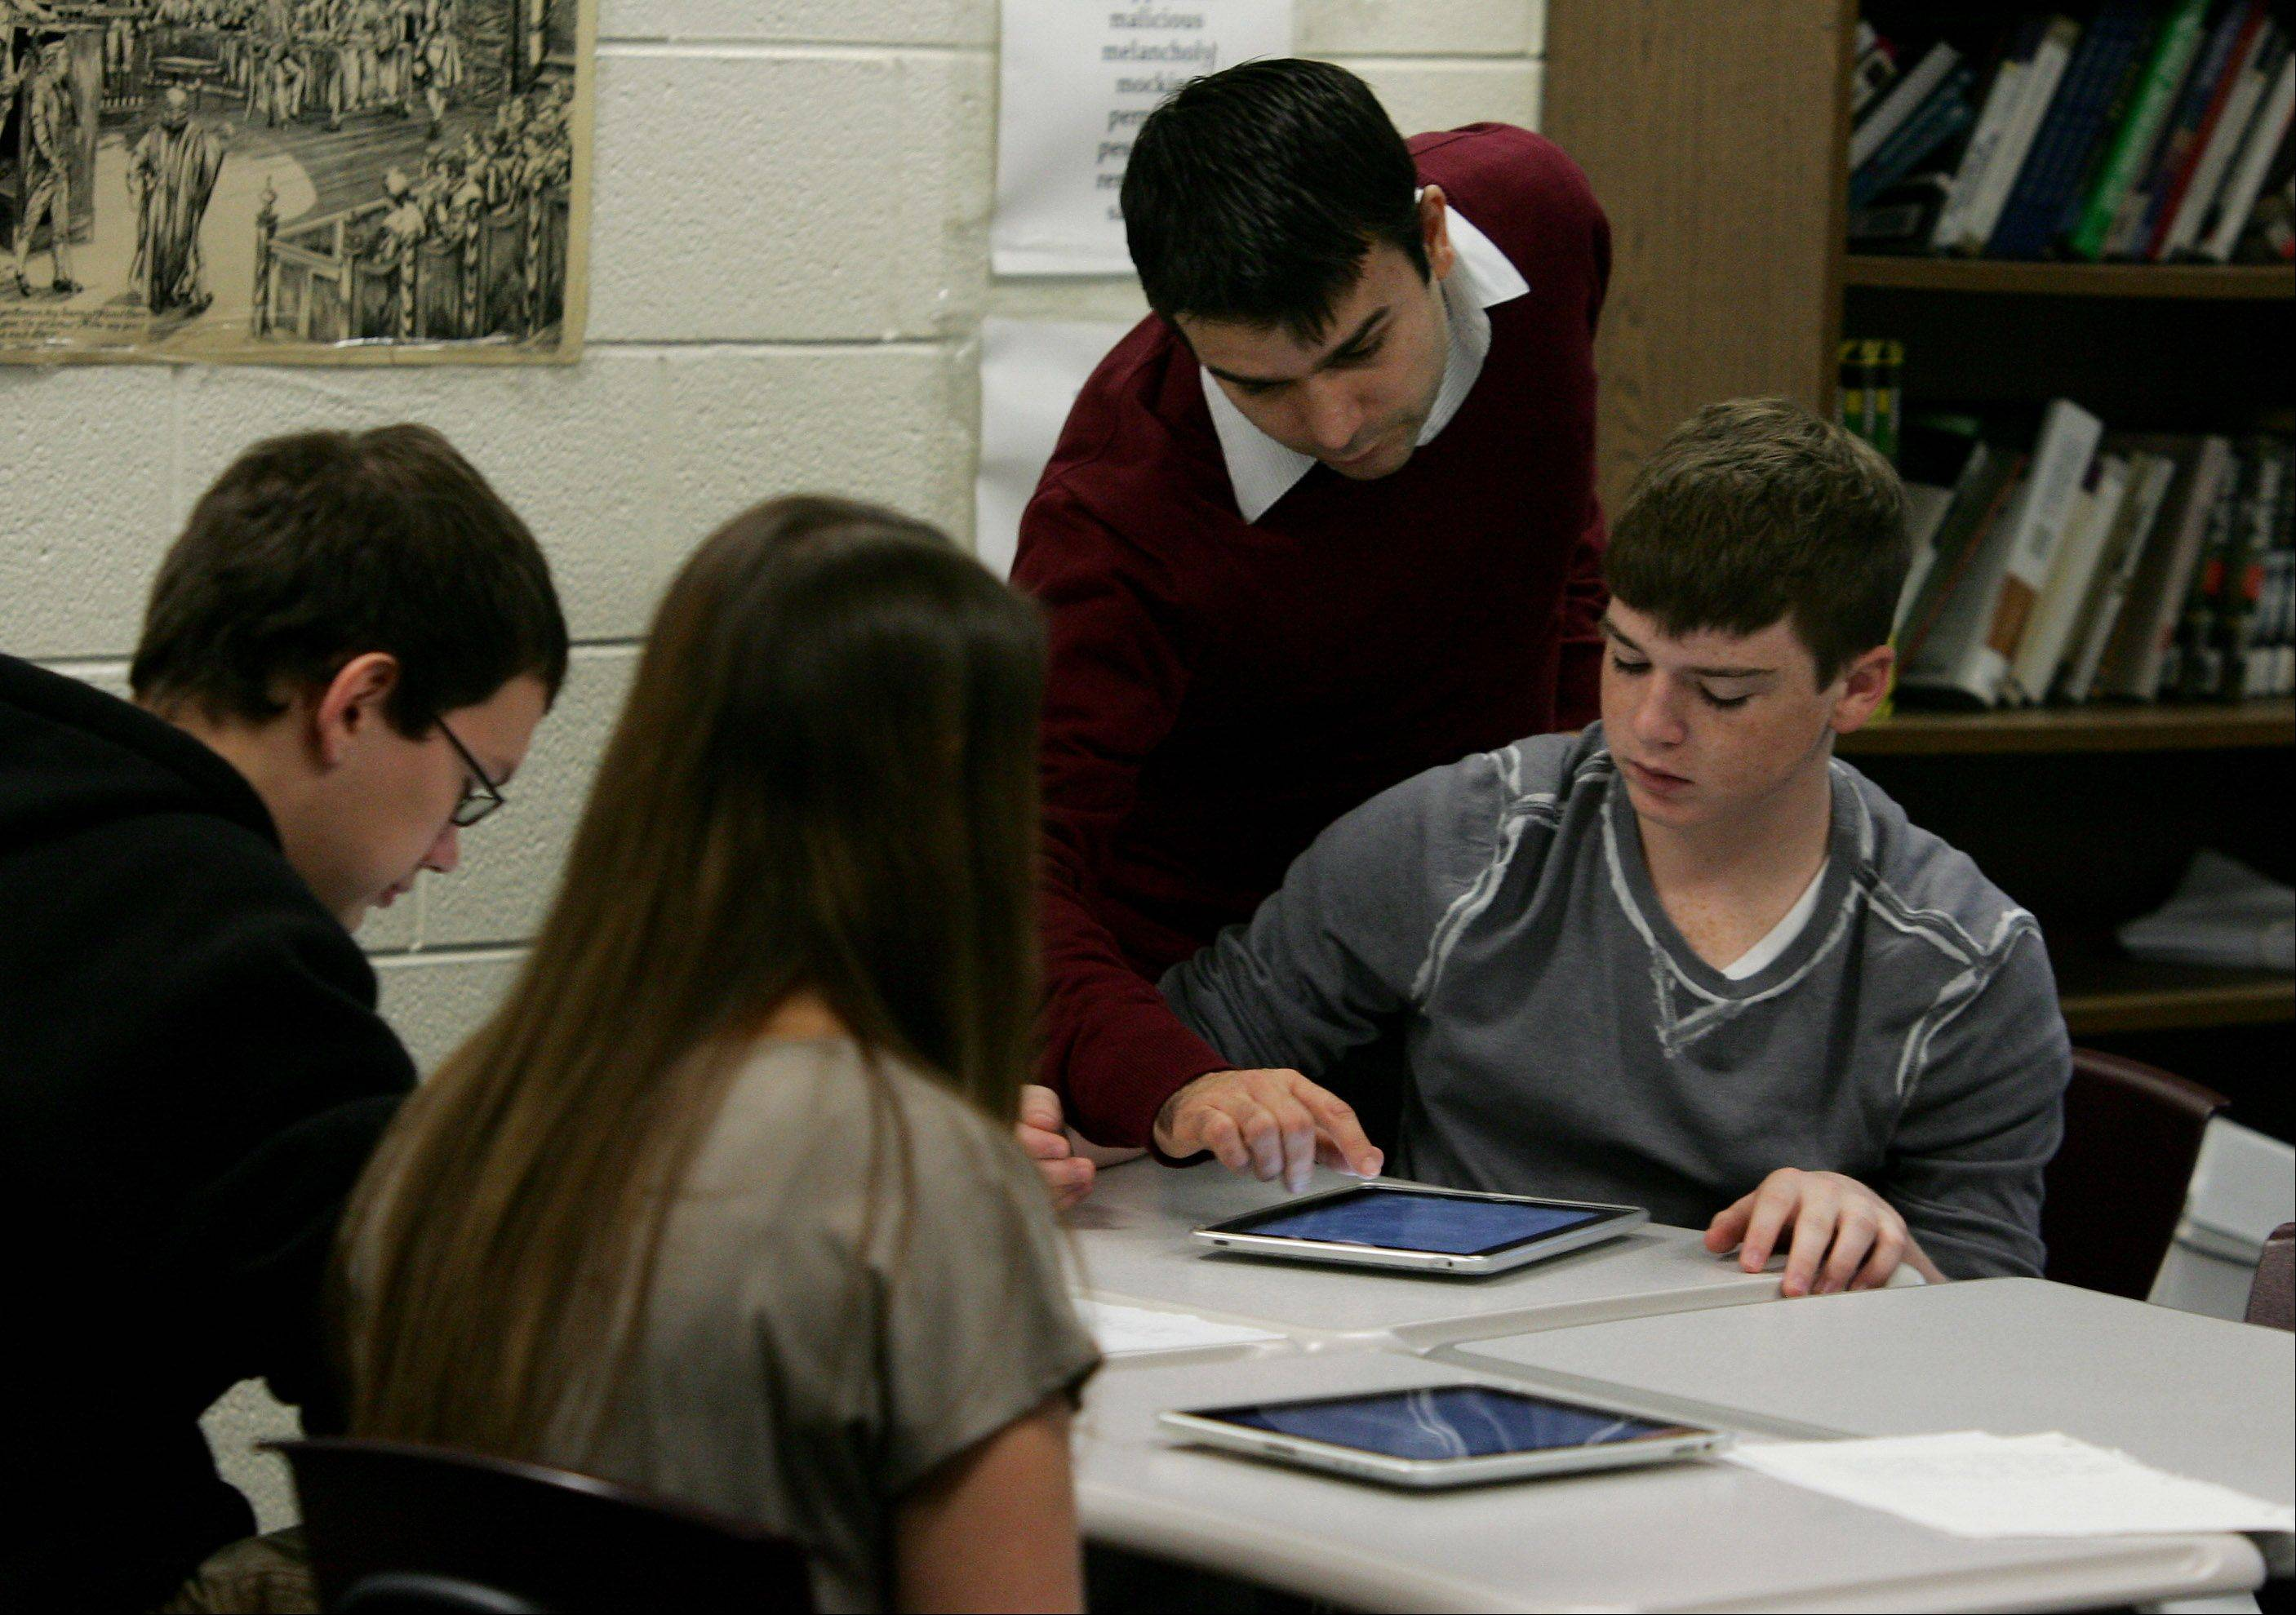 Sophomore English teacher Joseph Geocaris works with students using iPads on assignments at Stevenson High School in Lincolnshire.